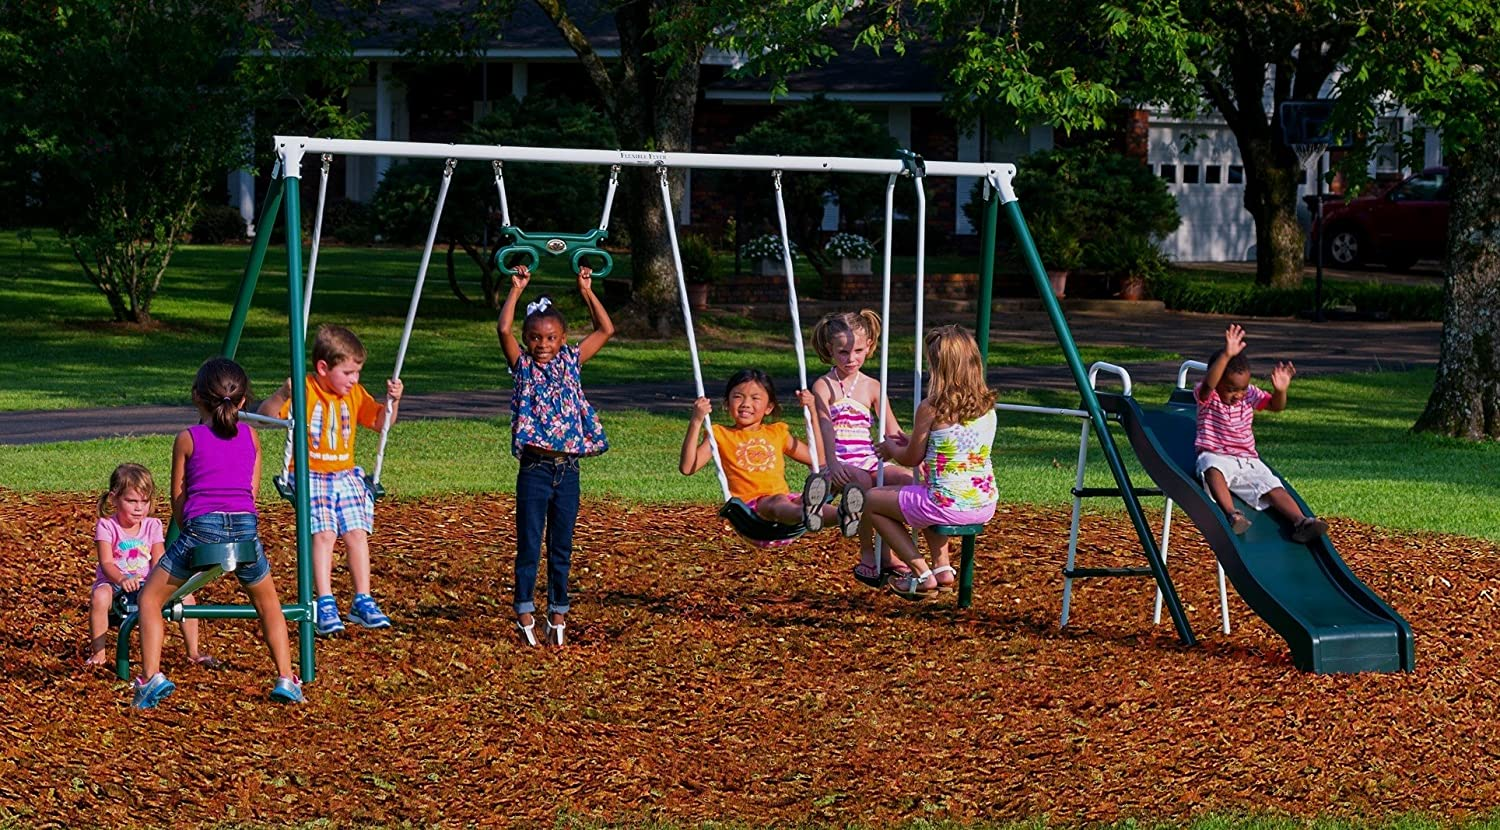 Amazon.com: Flexible Flyer Backyard Fun Swing Set with Plays: Sports &  Outdoors